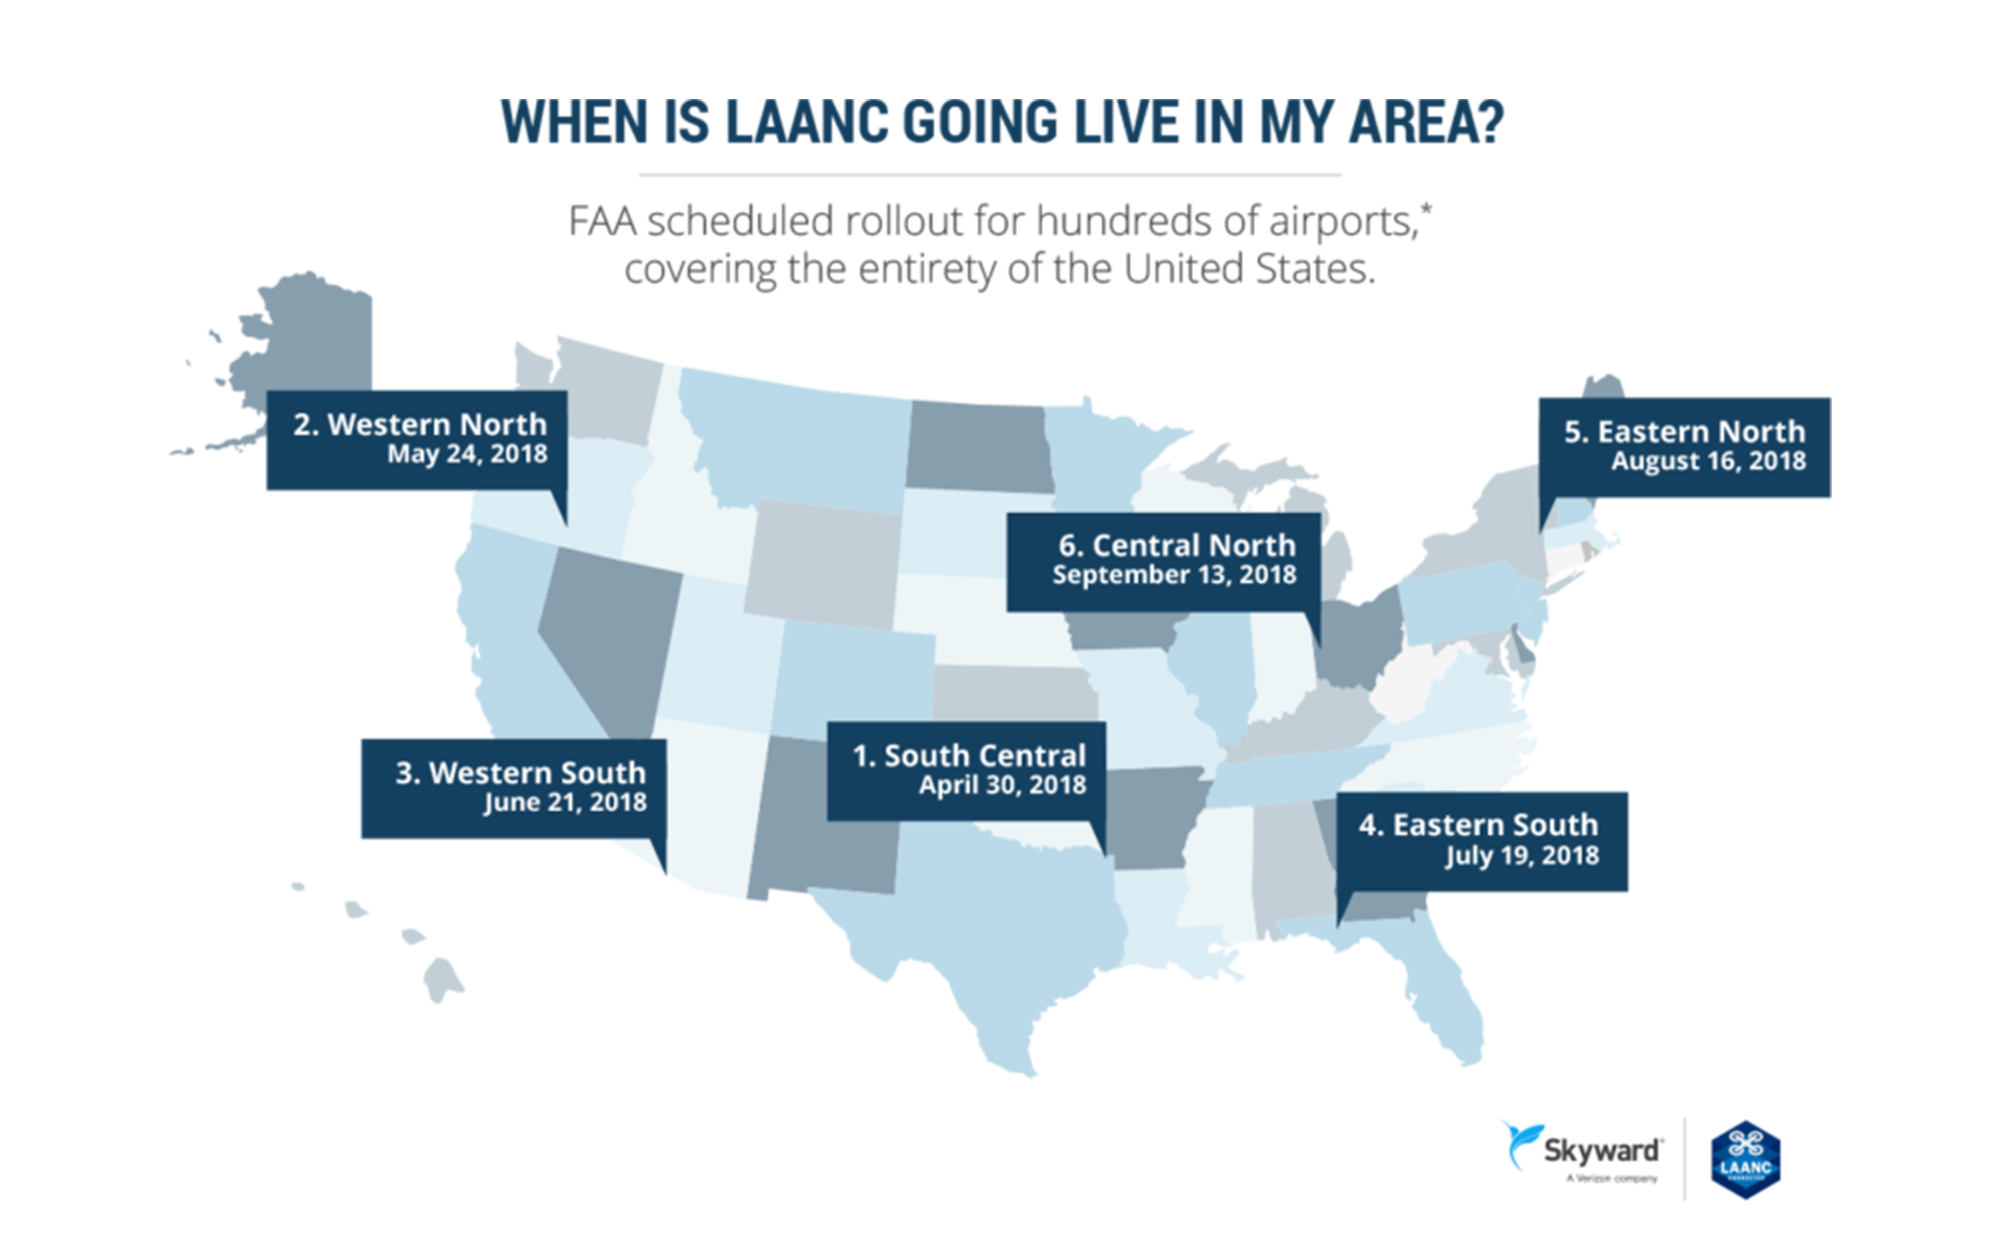 Faa Begins The Expansion Of The Laanc Program To Include 300 Air